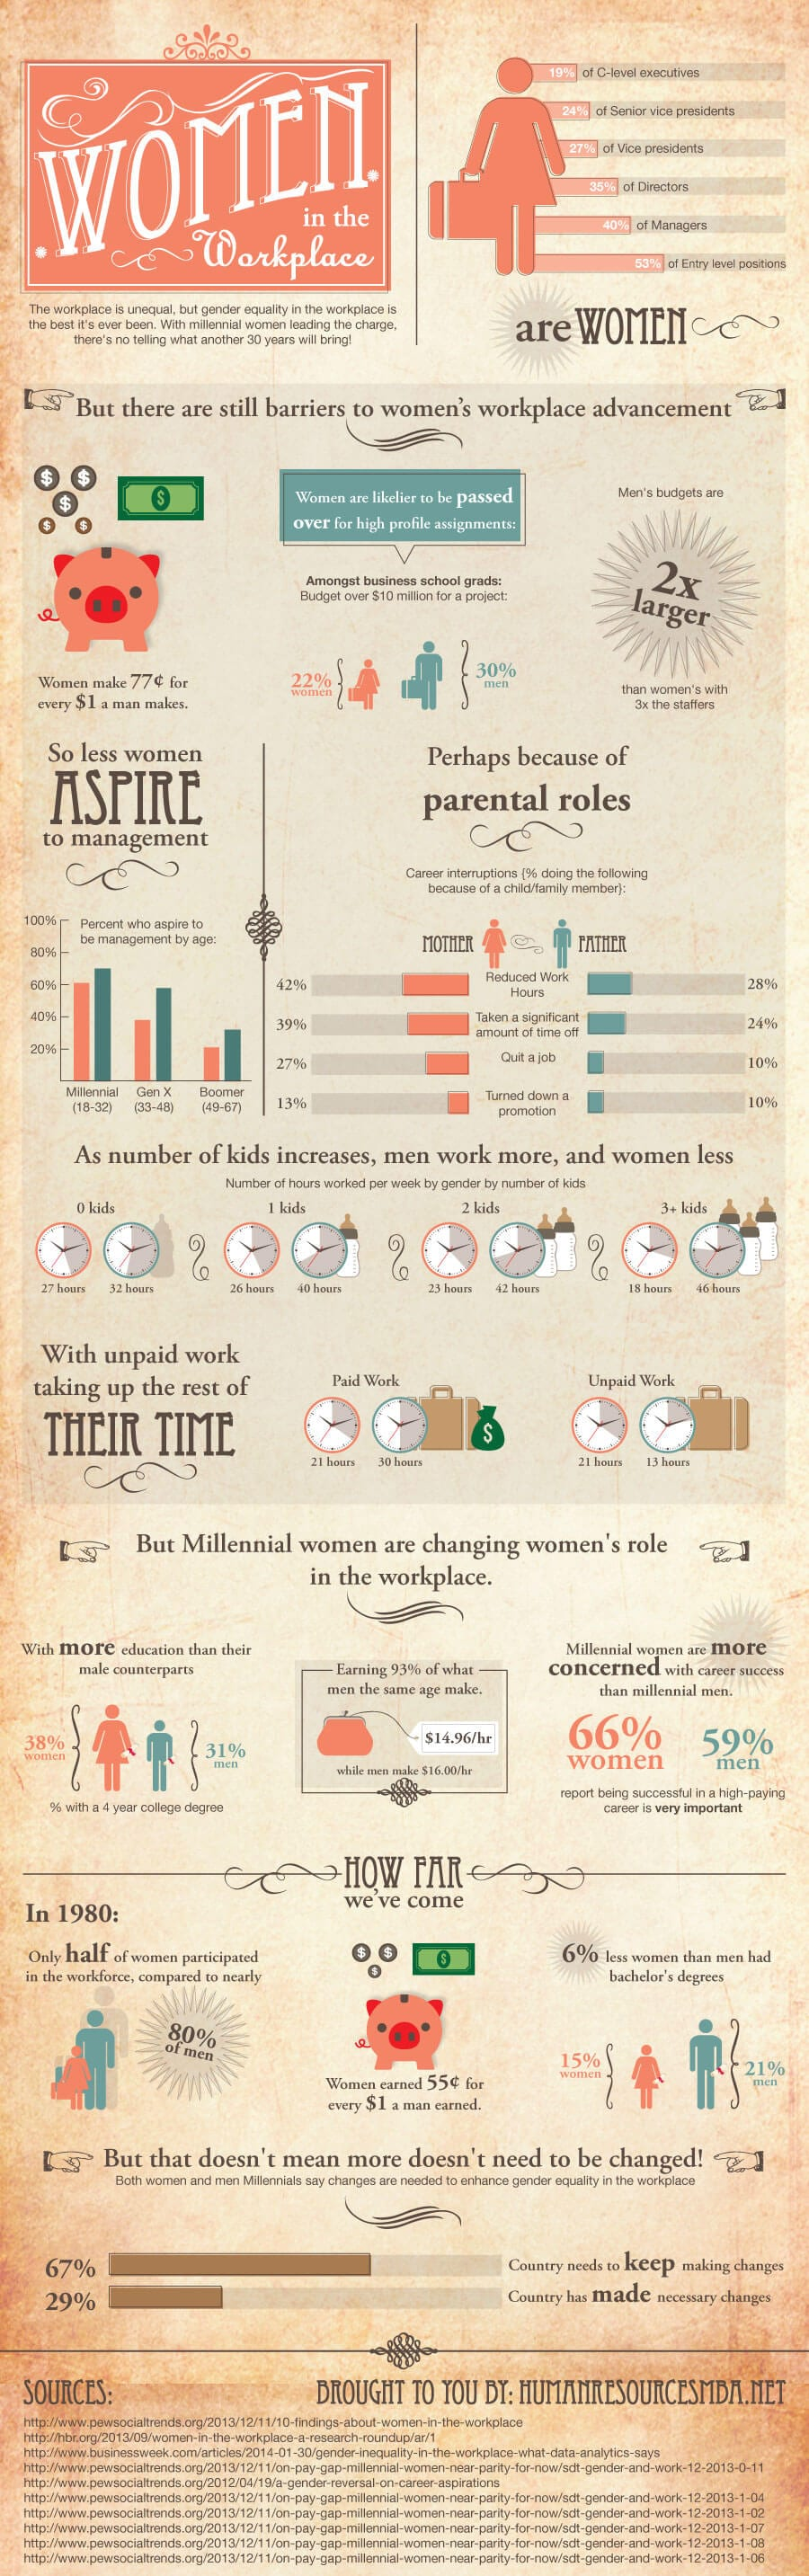 [Infographic] Women In the Workplace: Then Vs. Now - An Infographic from InPower Women